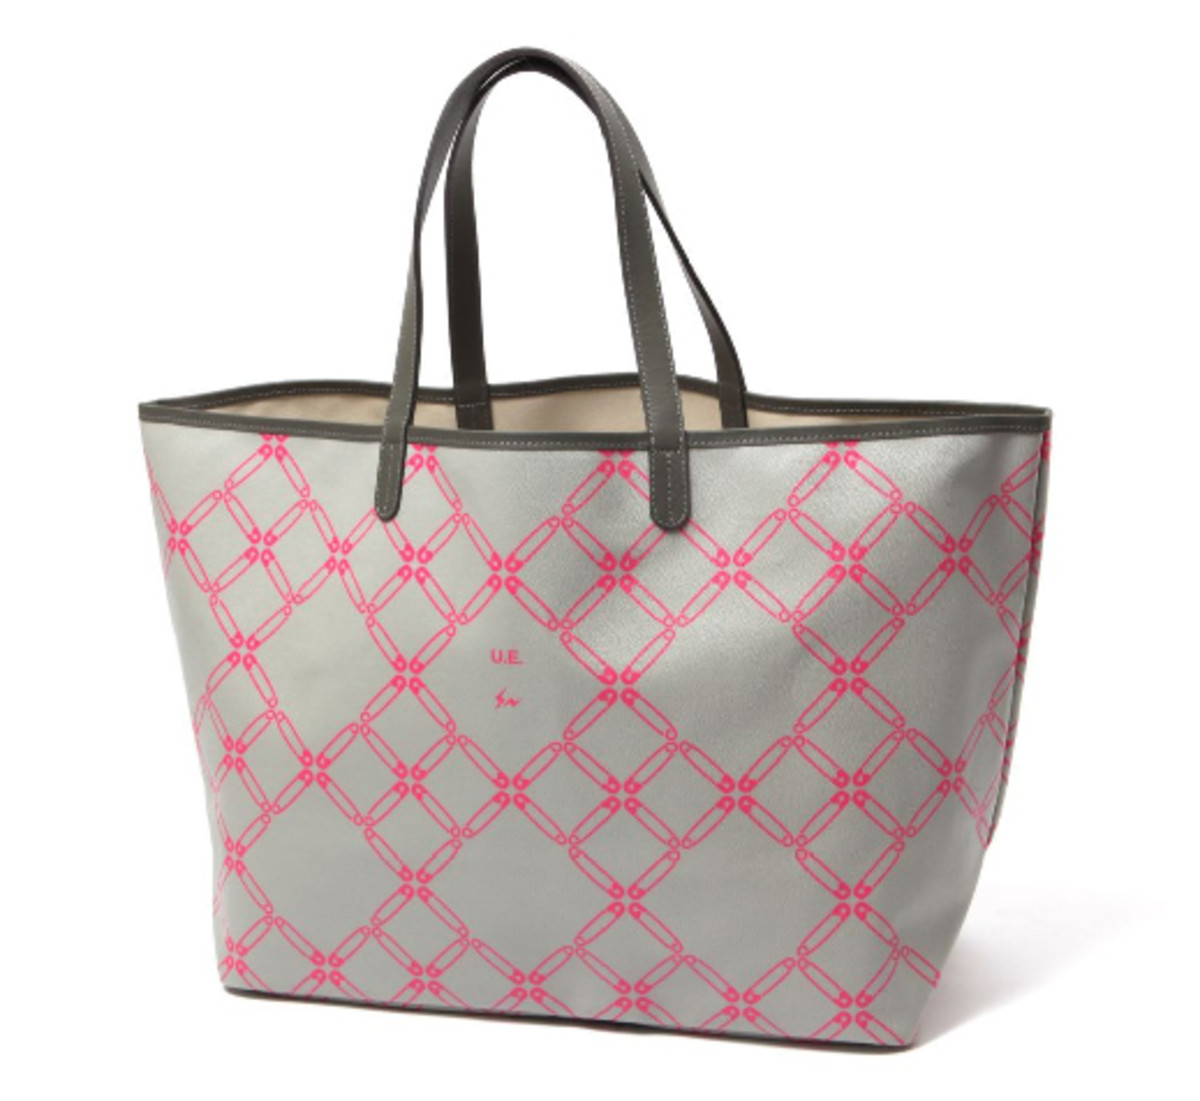 uniform-experiment-chain-link-tote-pink